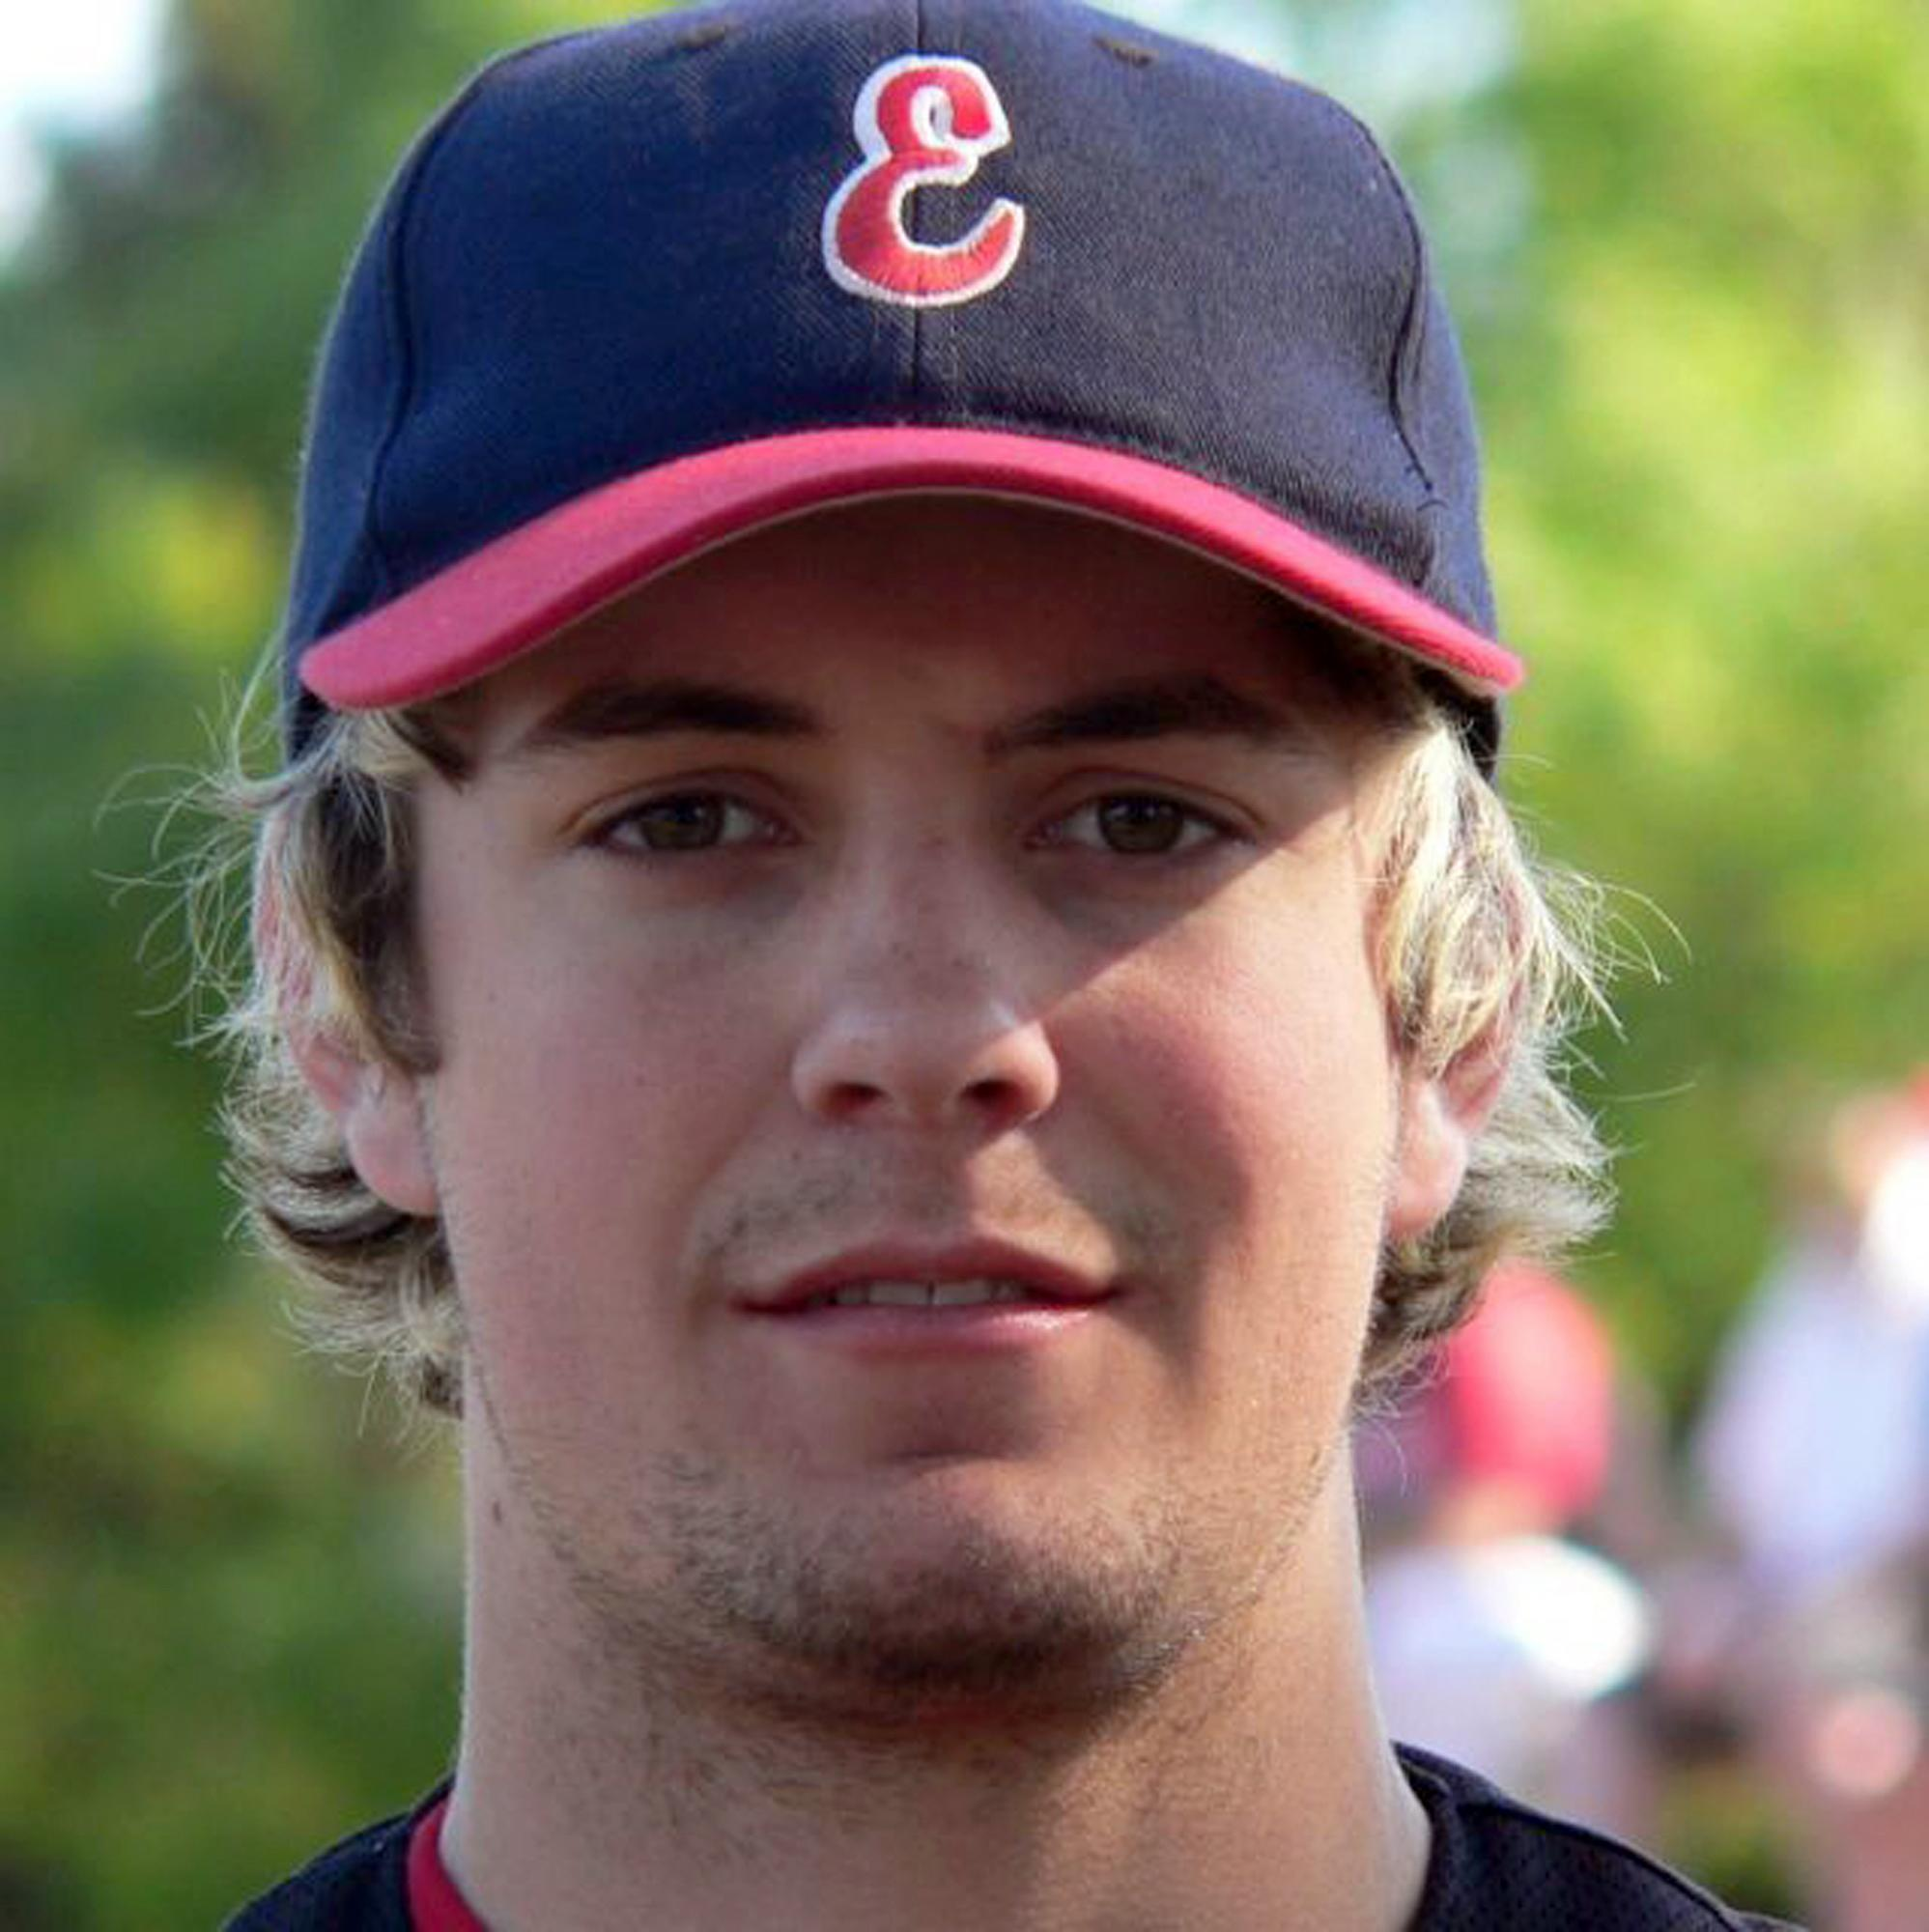 """In this undated photo provided by the Essendon Baseball Club, player Chris Lane wears his baseball equipment, in Australia. The Australian baseball player out for a jog in an Oklahoma neighborhood was shot and killed by three """"bored"""" teenagers who decided to kill someone for fun, police said. Lane, who was visiting the town of Duncan where his girlfriend and her family lives, had passed a home where the boys were staying and that apparently led to him being gunned down at random, Police Chief Danny Ford said Monday, Aug. 19, 2013. (AP Photo/Essendon Baseball Club) EDITORIAL USE ONLY"""